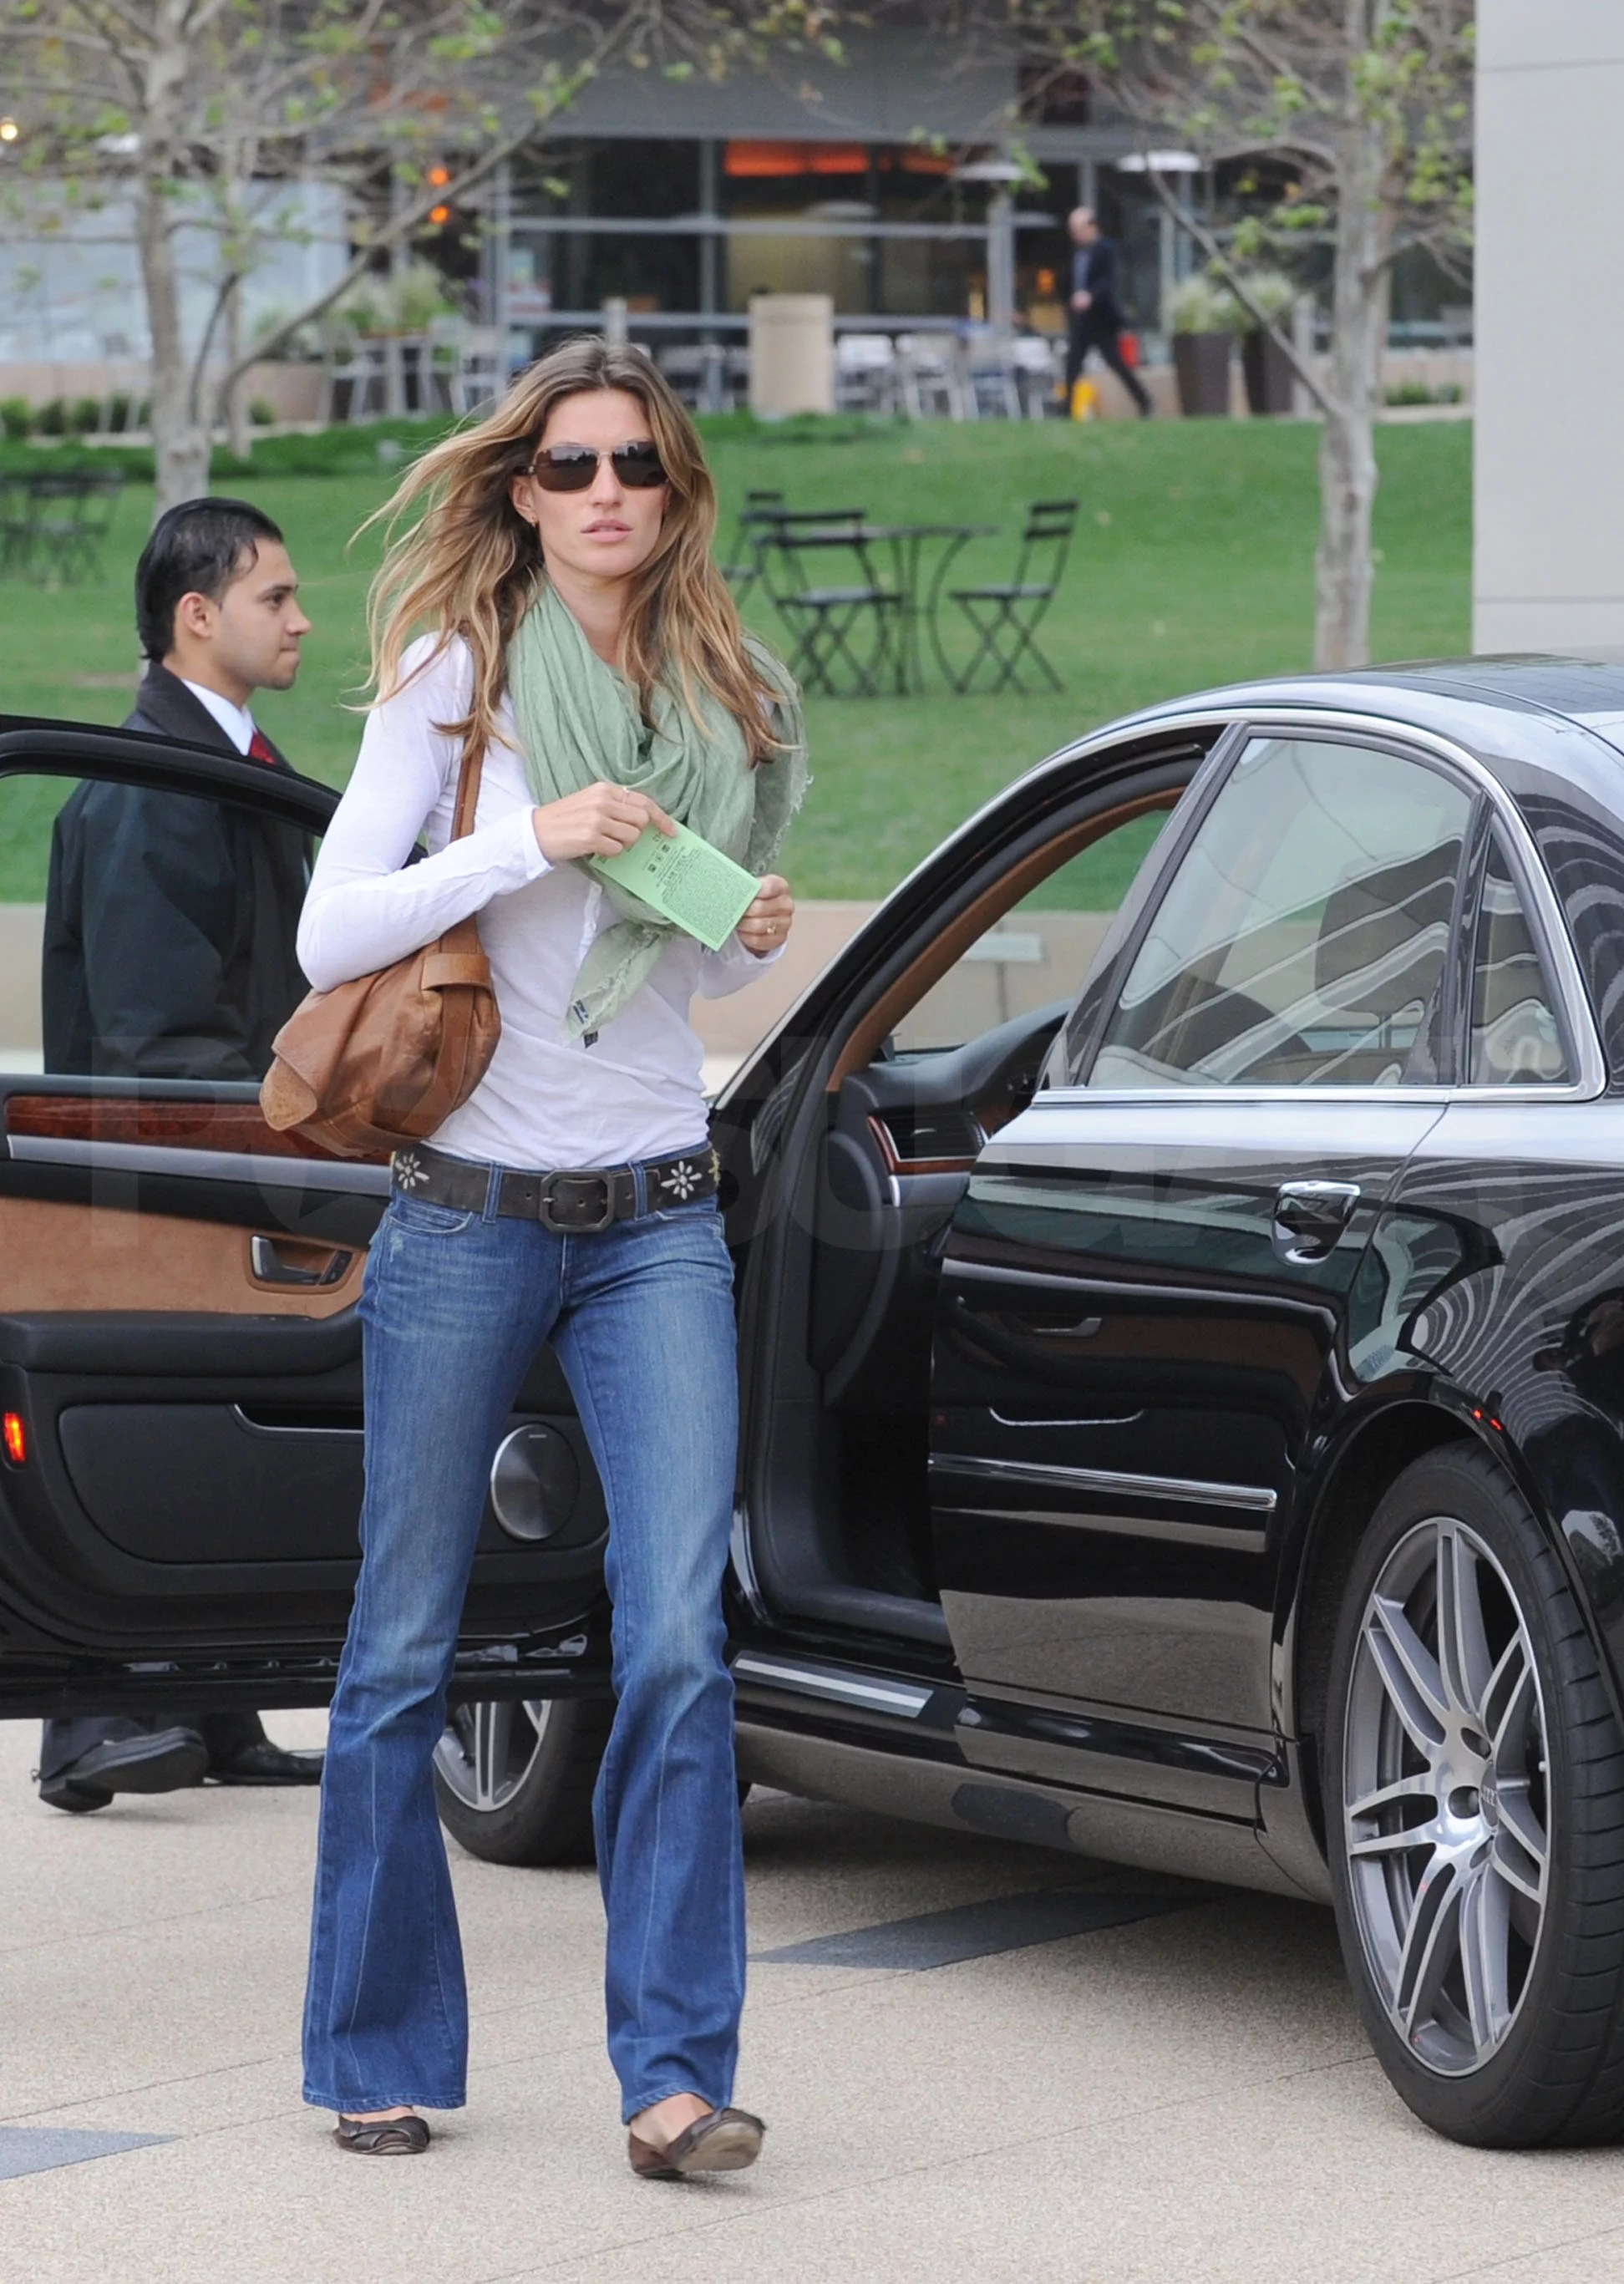 Photos Of Tom Brady And Gisele Bundchen A Few Days After